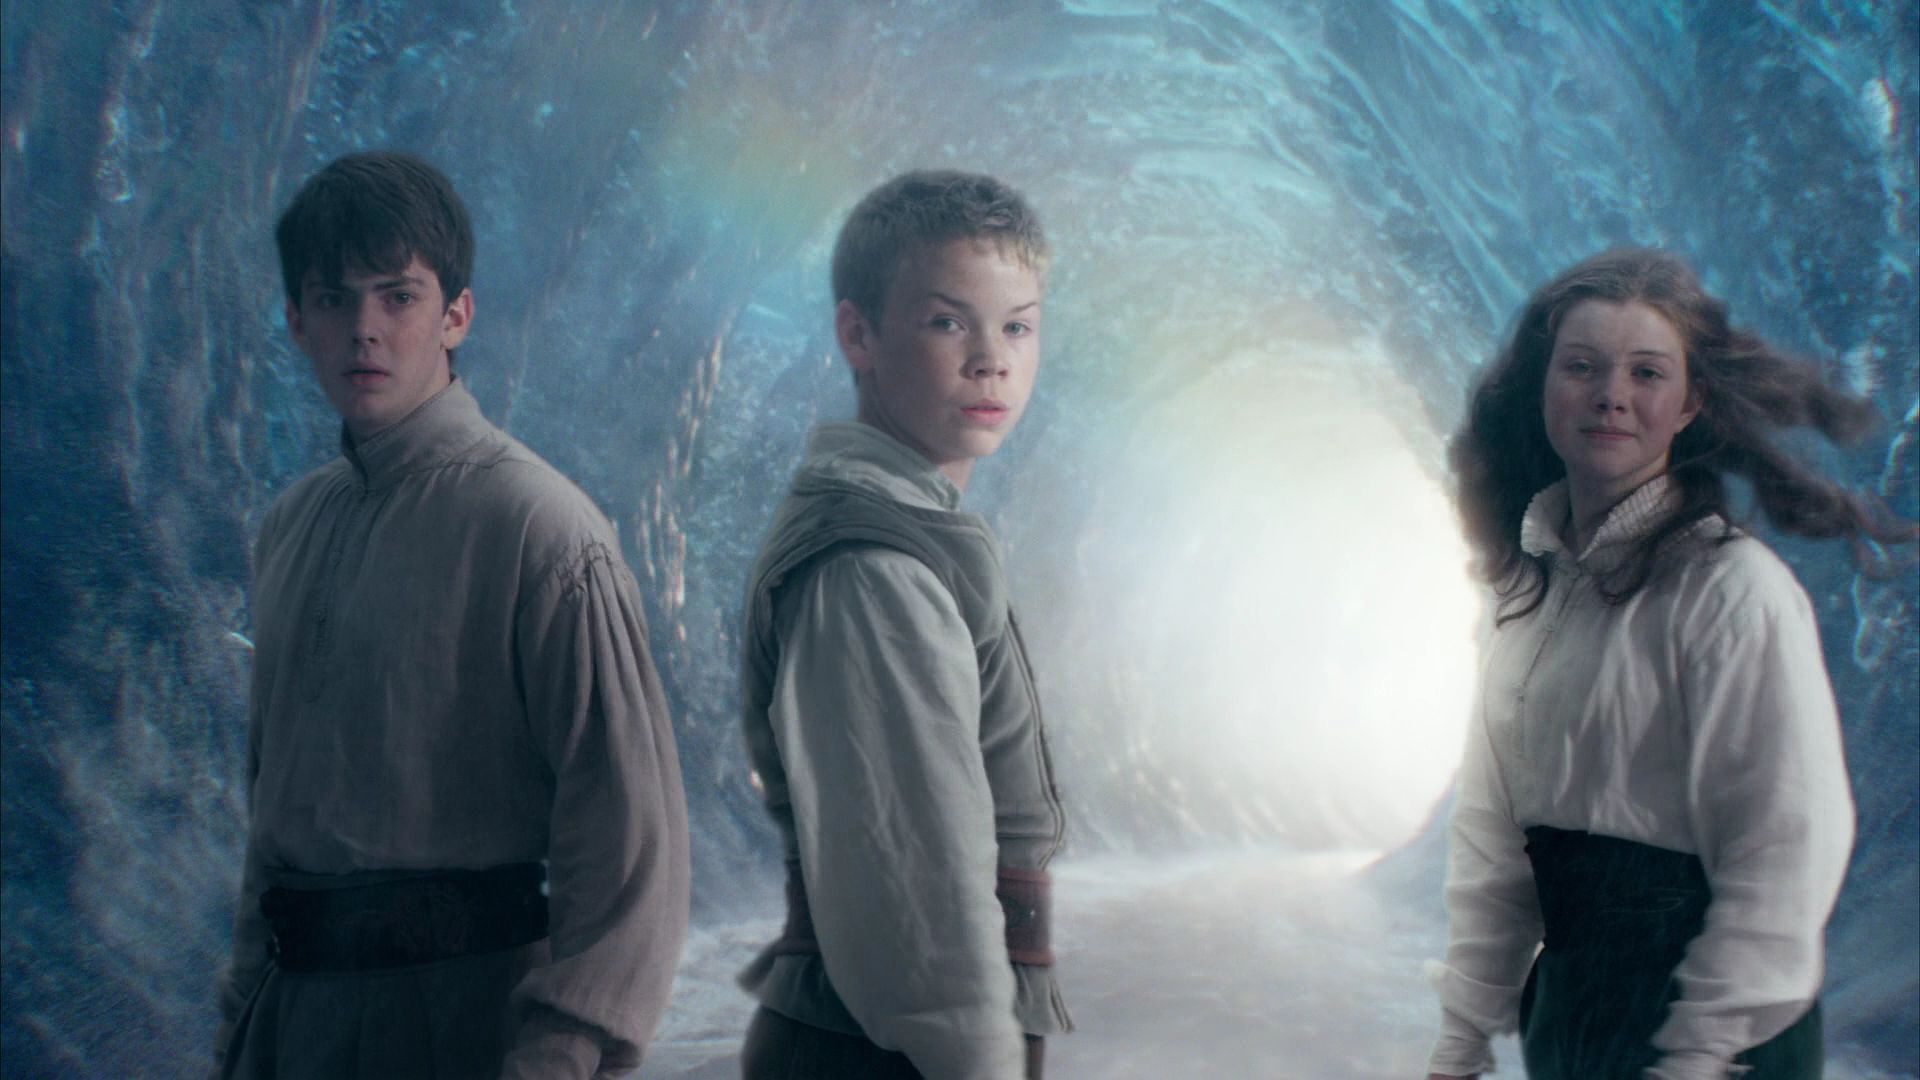 1920x1080 - The Chronicles of Narnia: The Voyage of the Dawn Treader Wallpapers 26